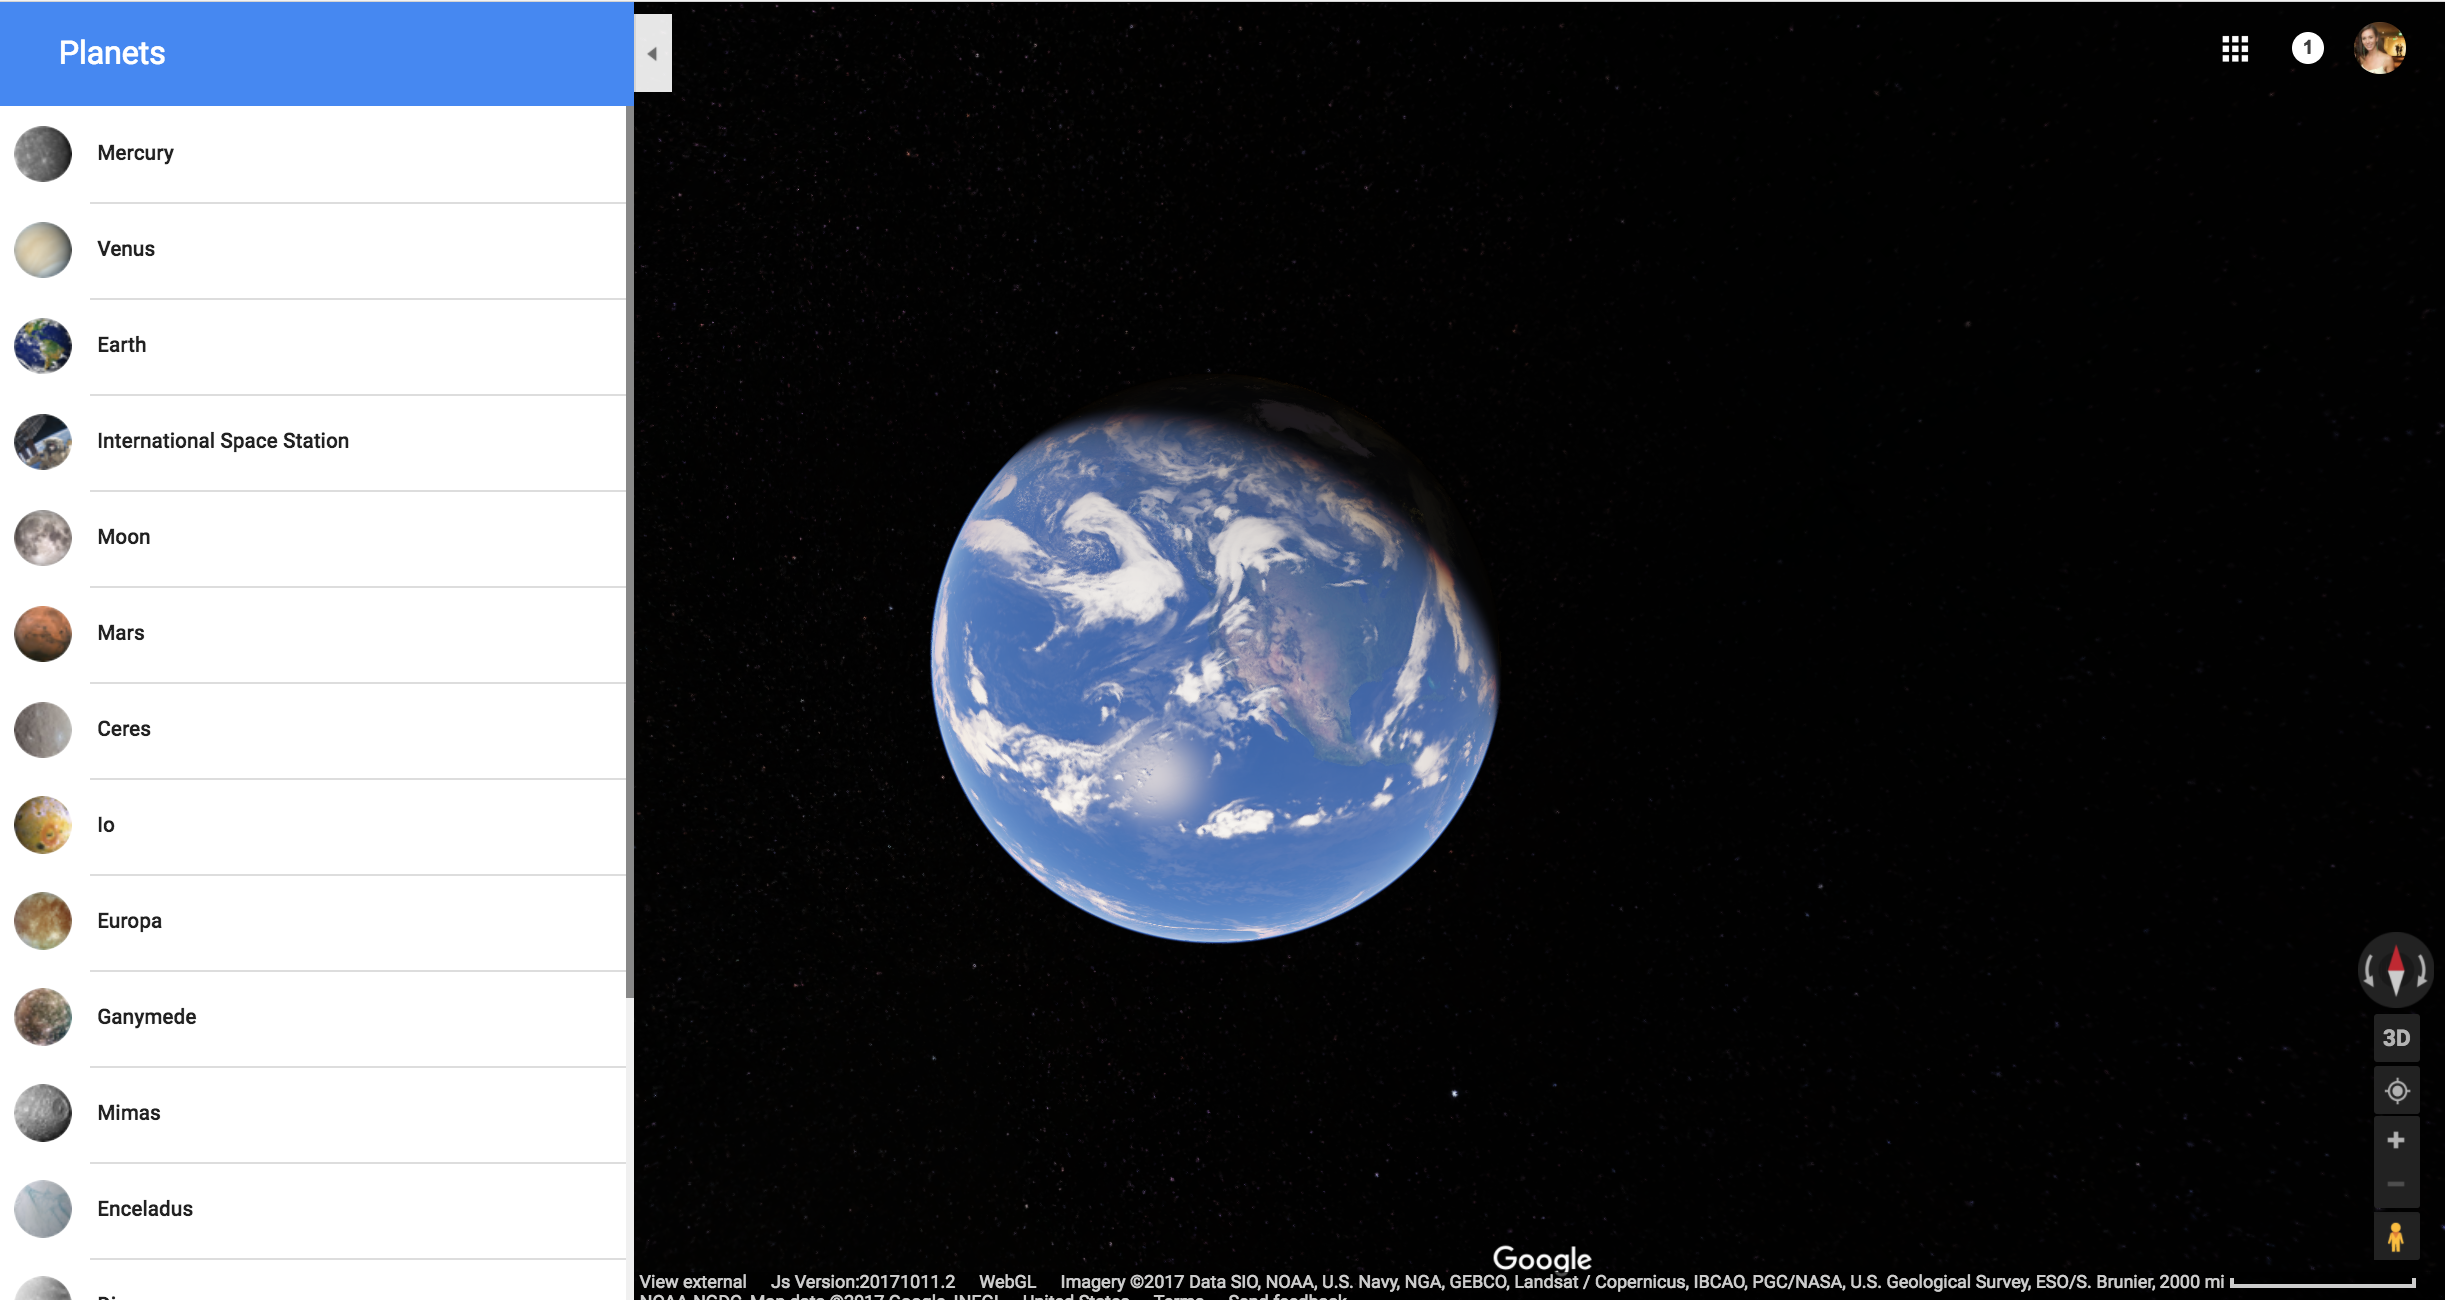 How to view satellite images on google earth